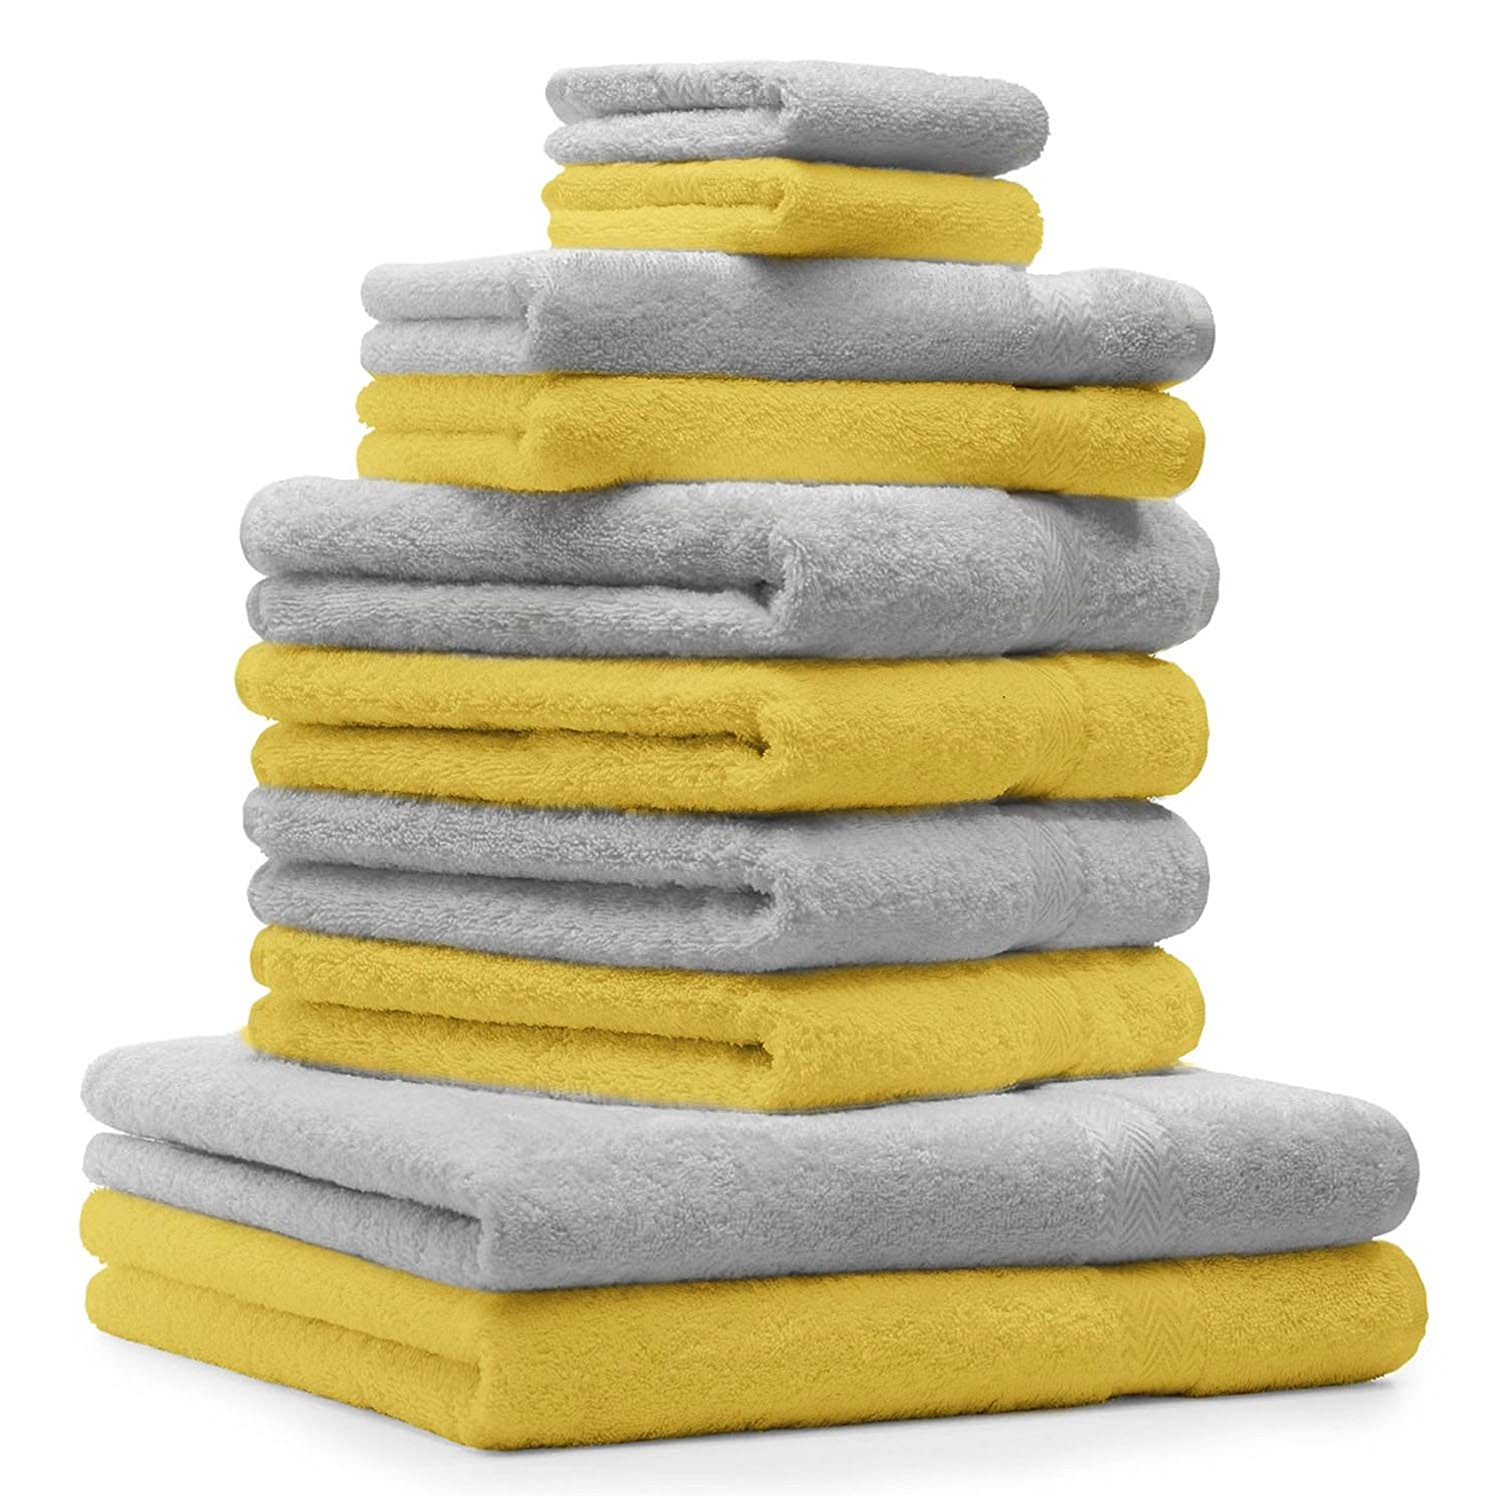 Betz 10 Piece Towel Set CLASSIC 2 Face Cloths 30x30 cm 2 Guest Towels 30x50 cm 4 Hand Towels 50x100 cm 2 Bath Towels 70x140 cm 100% Cotton colour silver grey and yellow